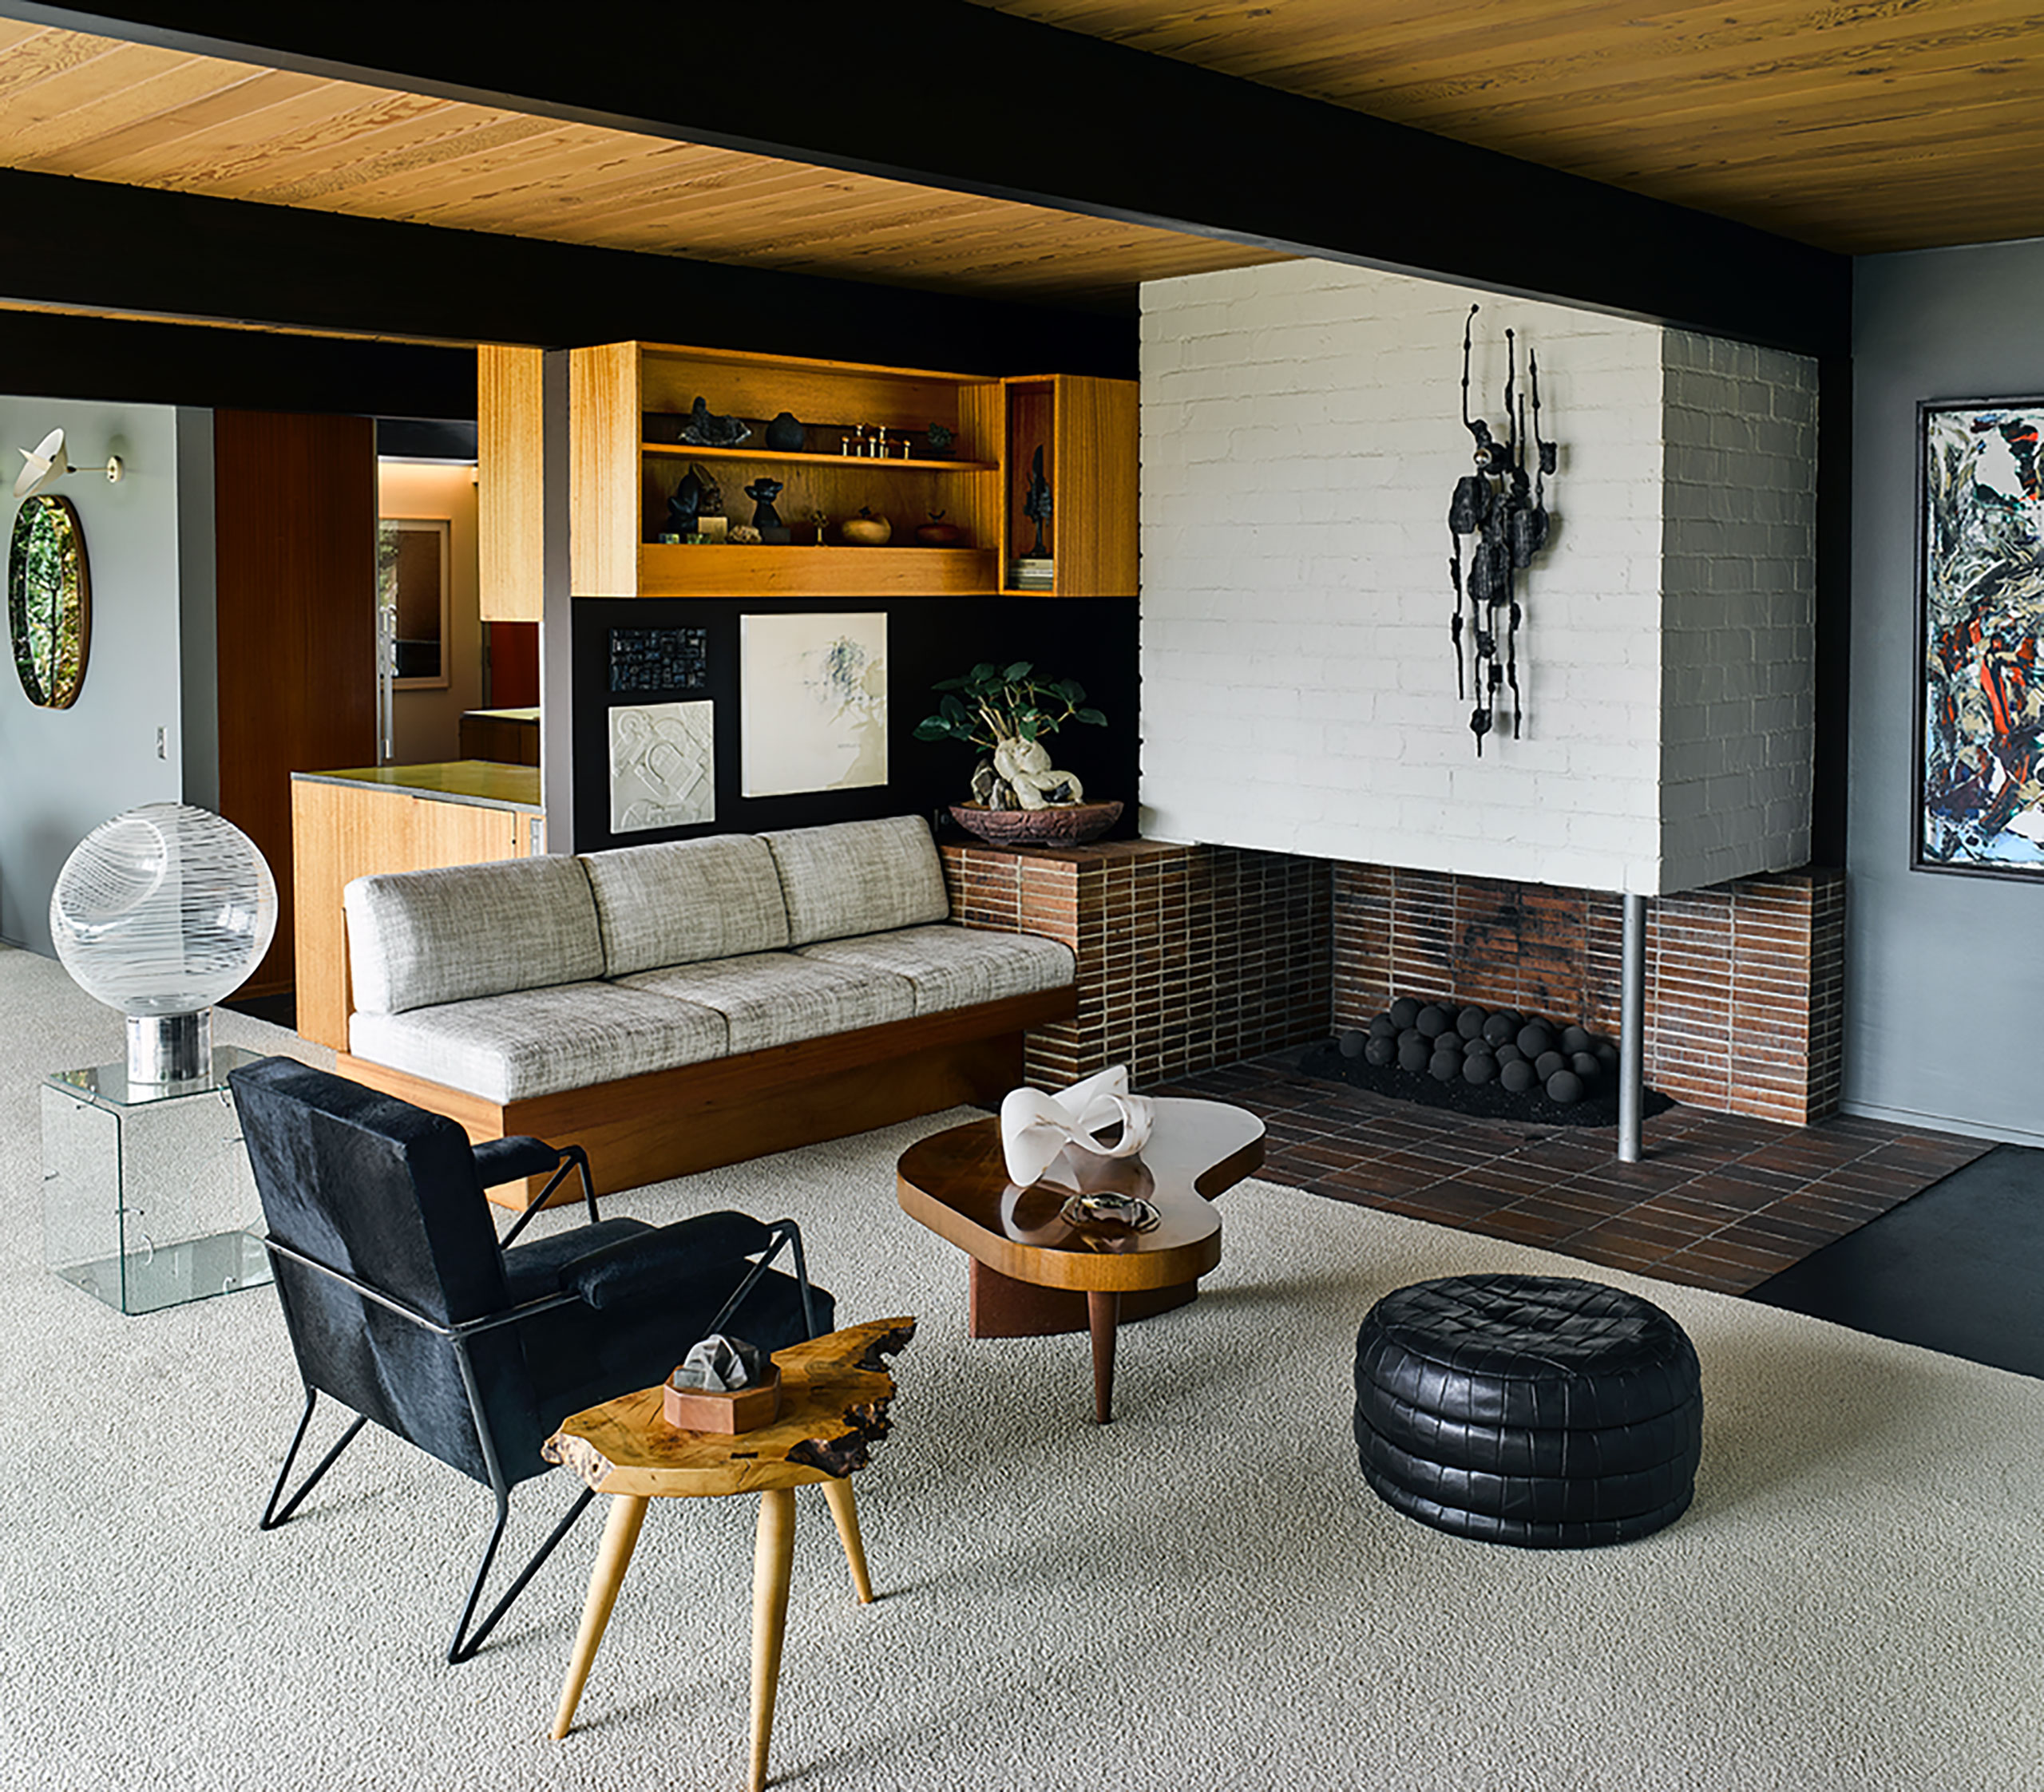 Photography by Douglas Friedman. Featured: Built-in sofa by Richard Neutra; Vistosi etched globe lamp on Gerard McCabe cube glass table; Black calf skin chair by Milo Baughman; drift wood side table by Michael Wilson; coffee table by Gilbert Rohde; leather patchwork ottoman by DeSede; bronze light sculpture by Tom Ahlstrom & Hans Ehrlich.